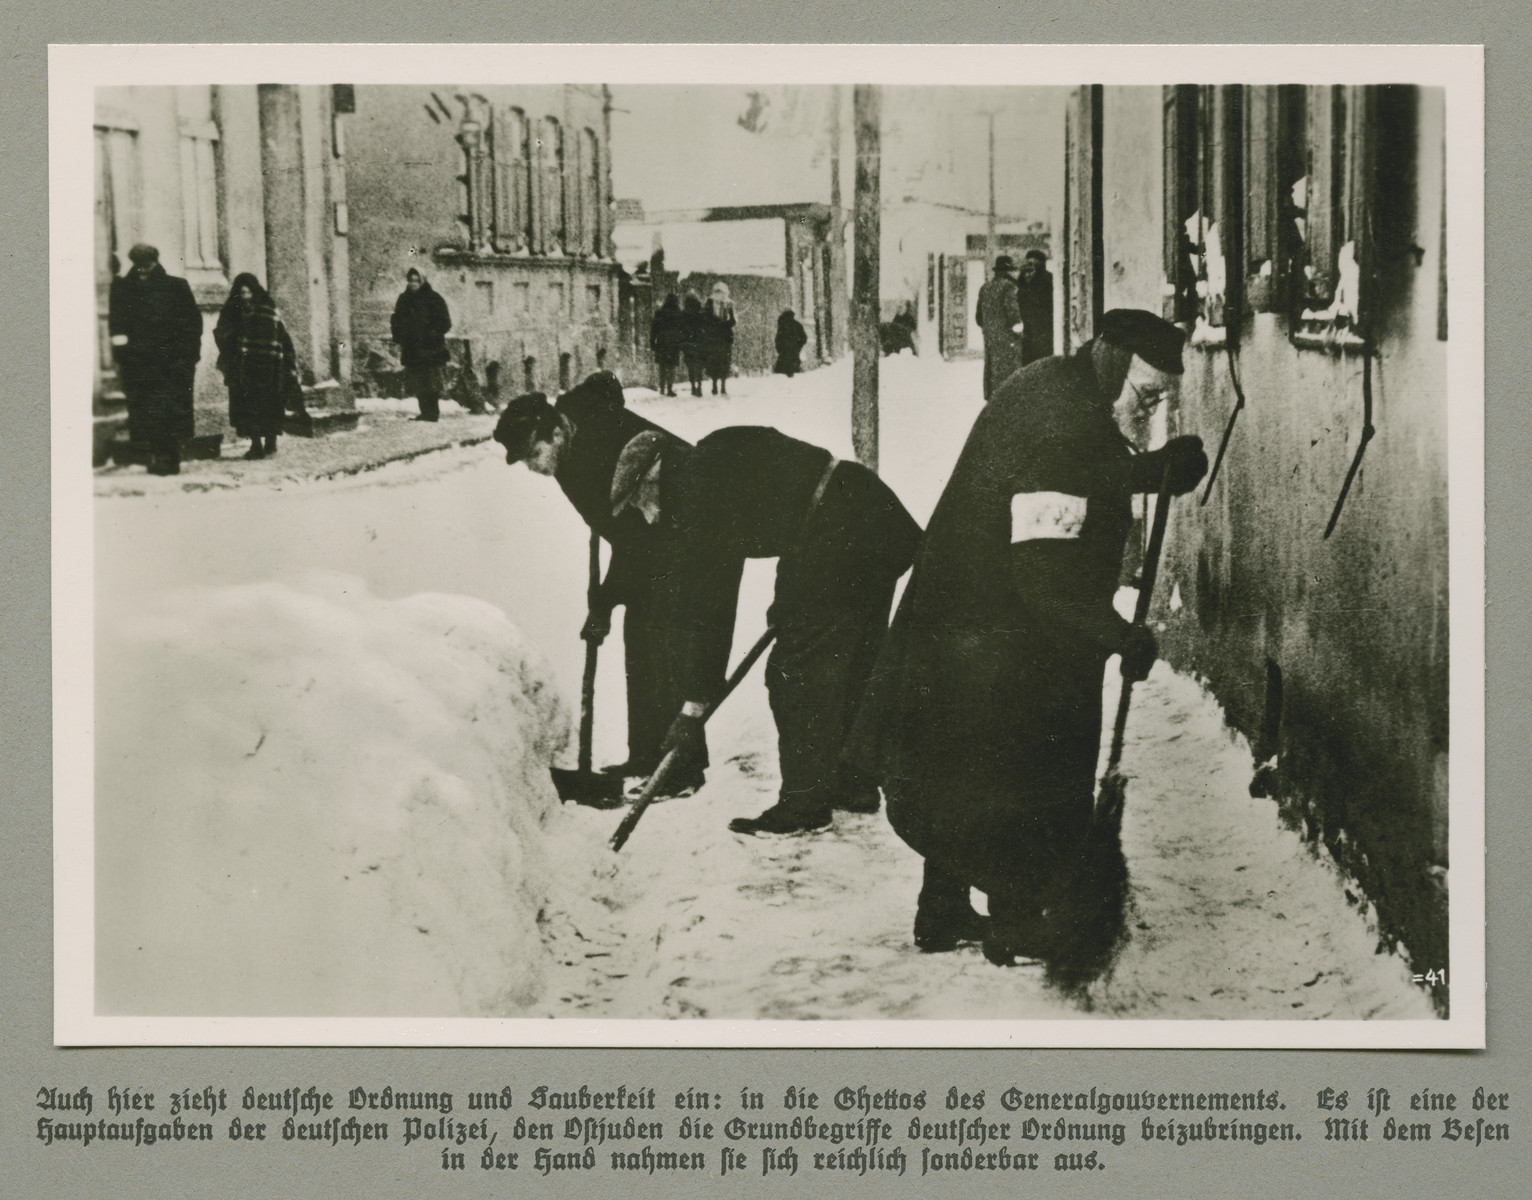 Three men, one with an armband, clear snow in the street of an unidentified ghetto.  Original caption reads: German tidiness and cleanliness settles in here too: in the the ghettos of the Generalgouvernment. It is one of the primary duties of the German police to teach Eastern Jews the basics of German order. They look quite peculiar with a broom in the hand.